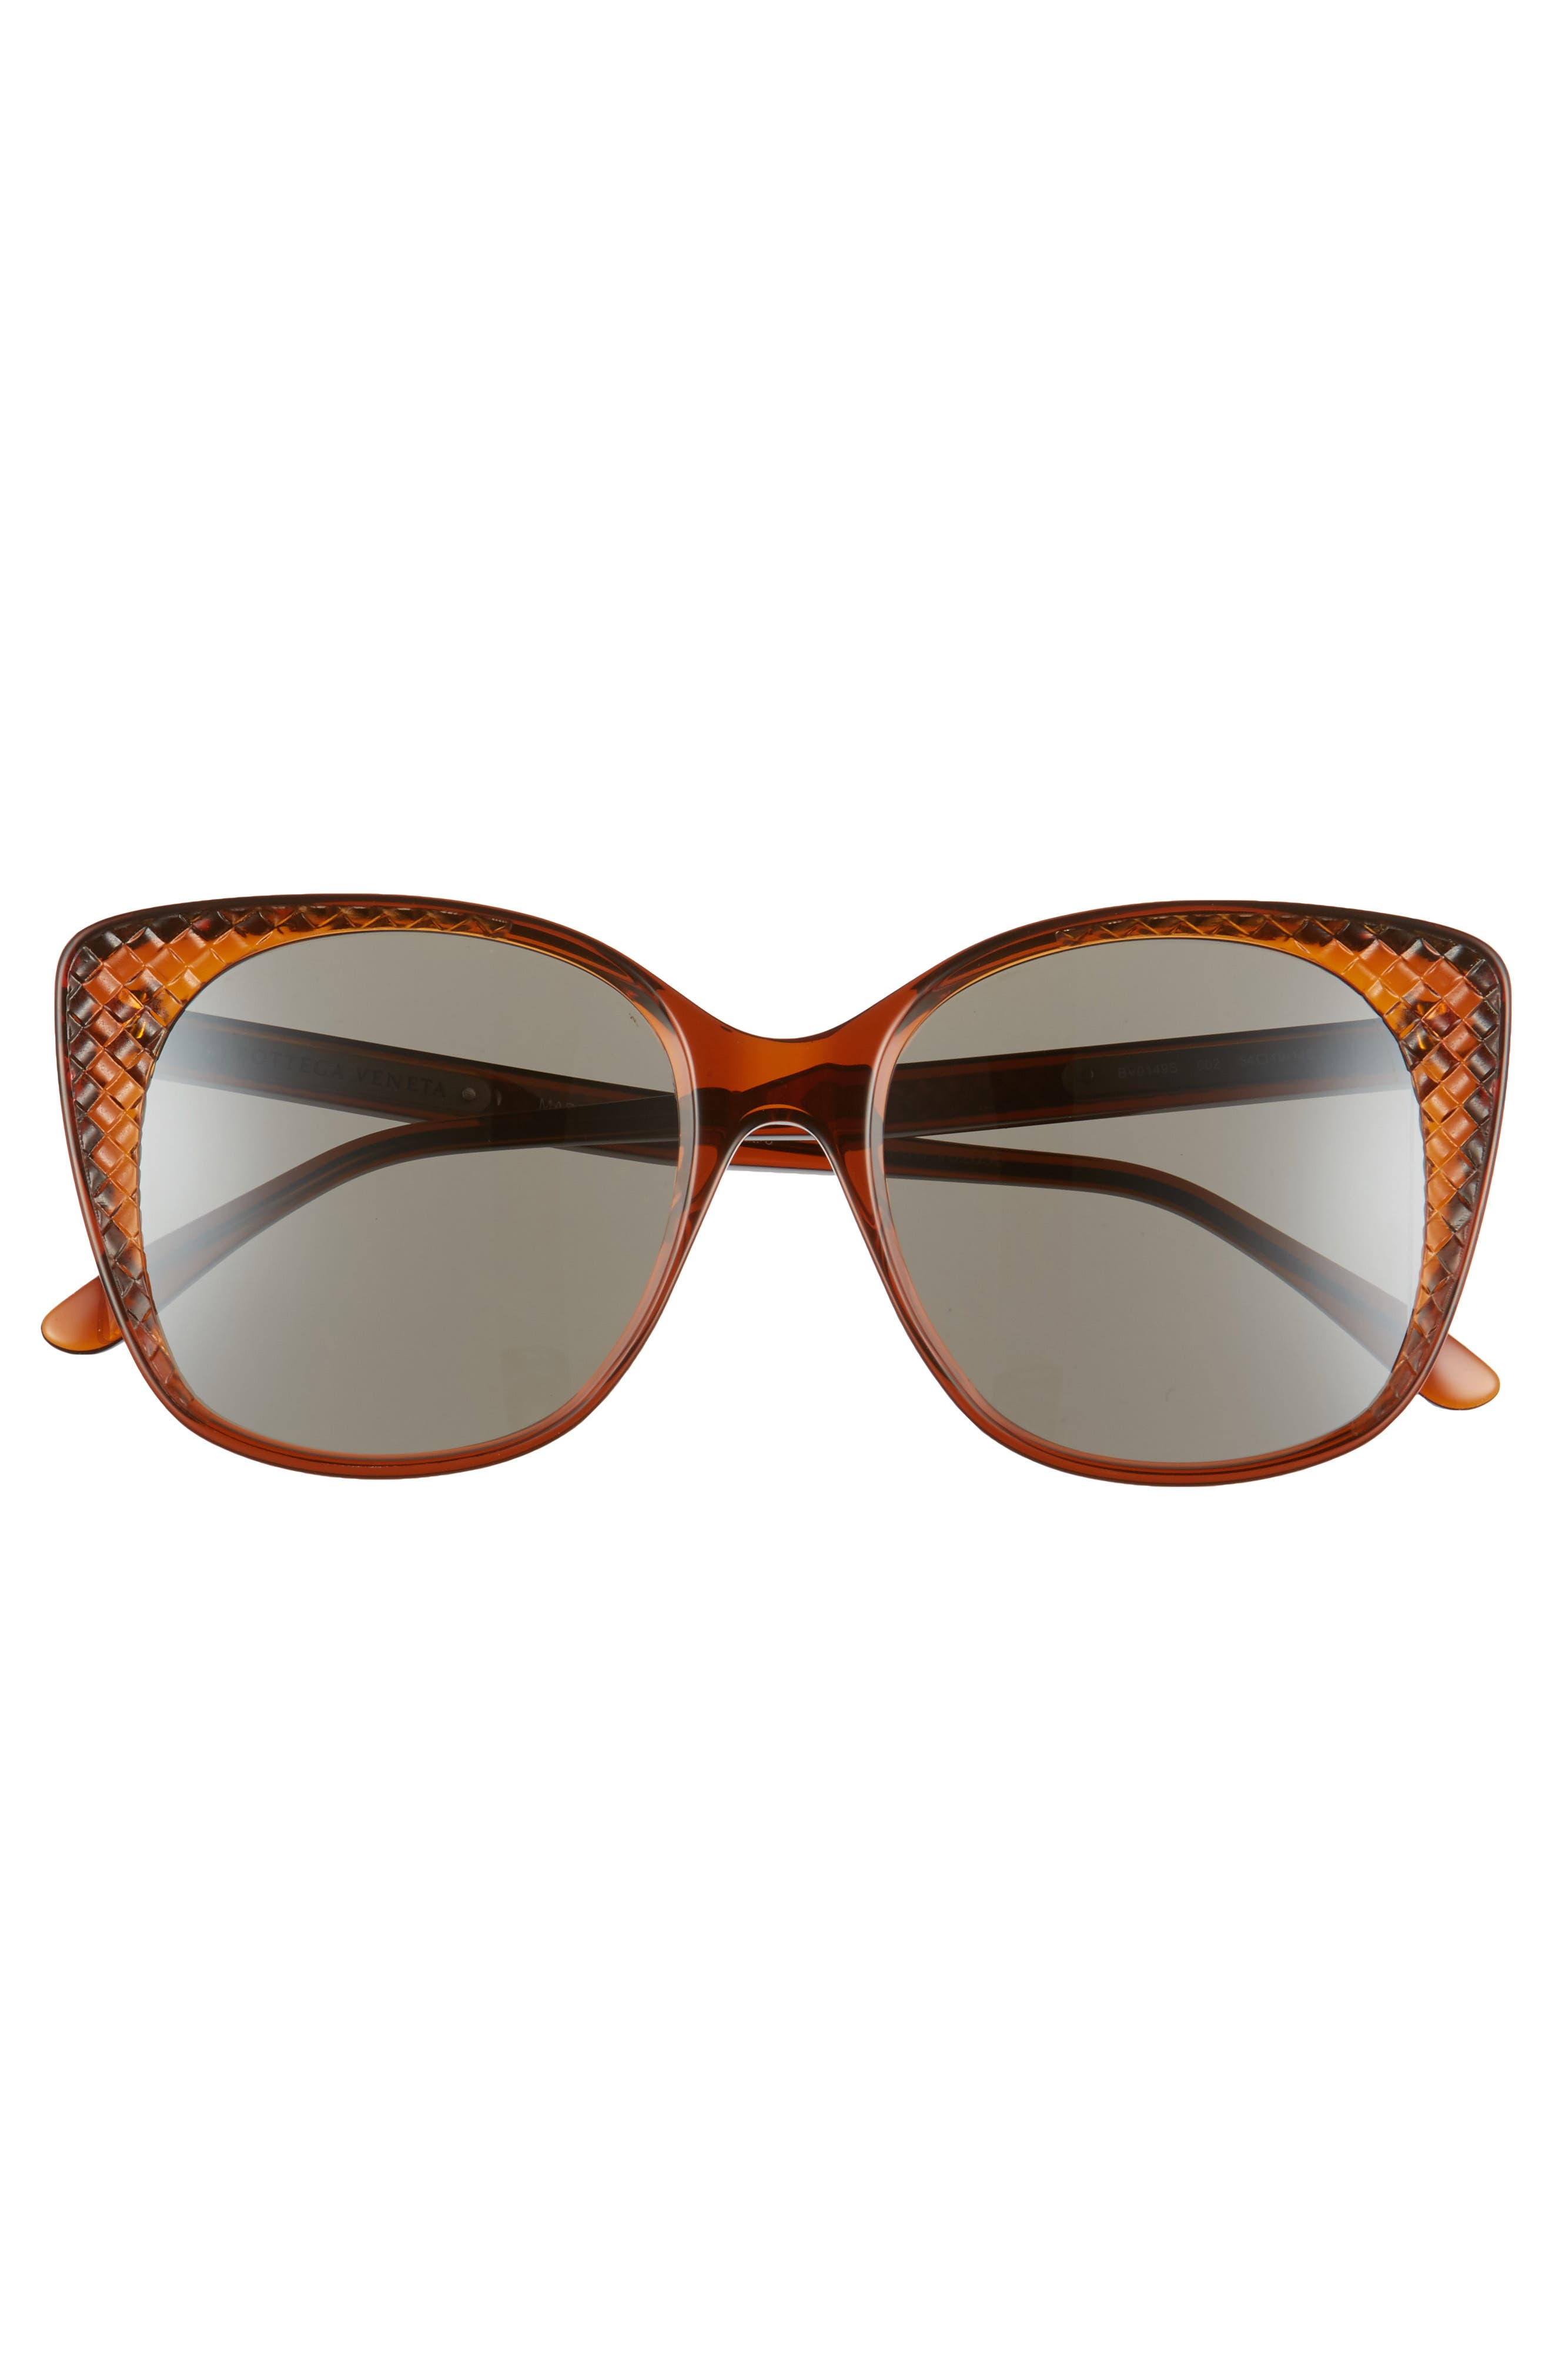 54mm Sunglasses,                             Alternate thumbnail 3, color,                             Chocolate Brown